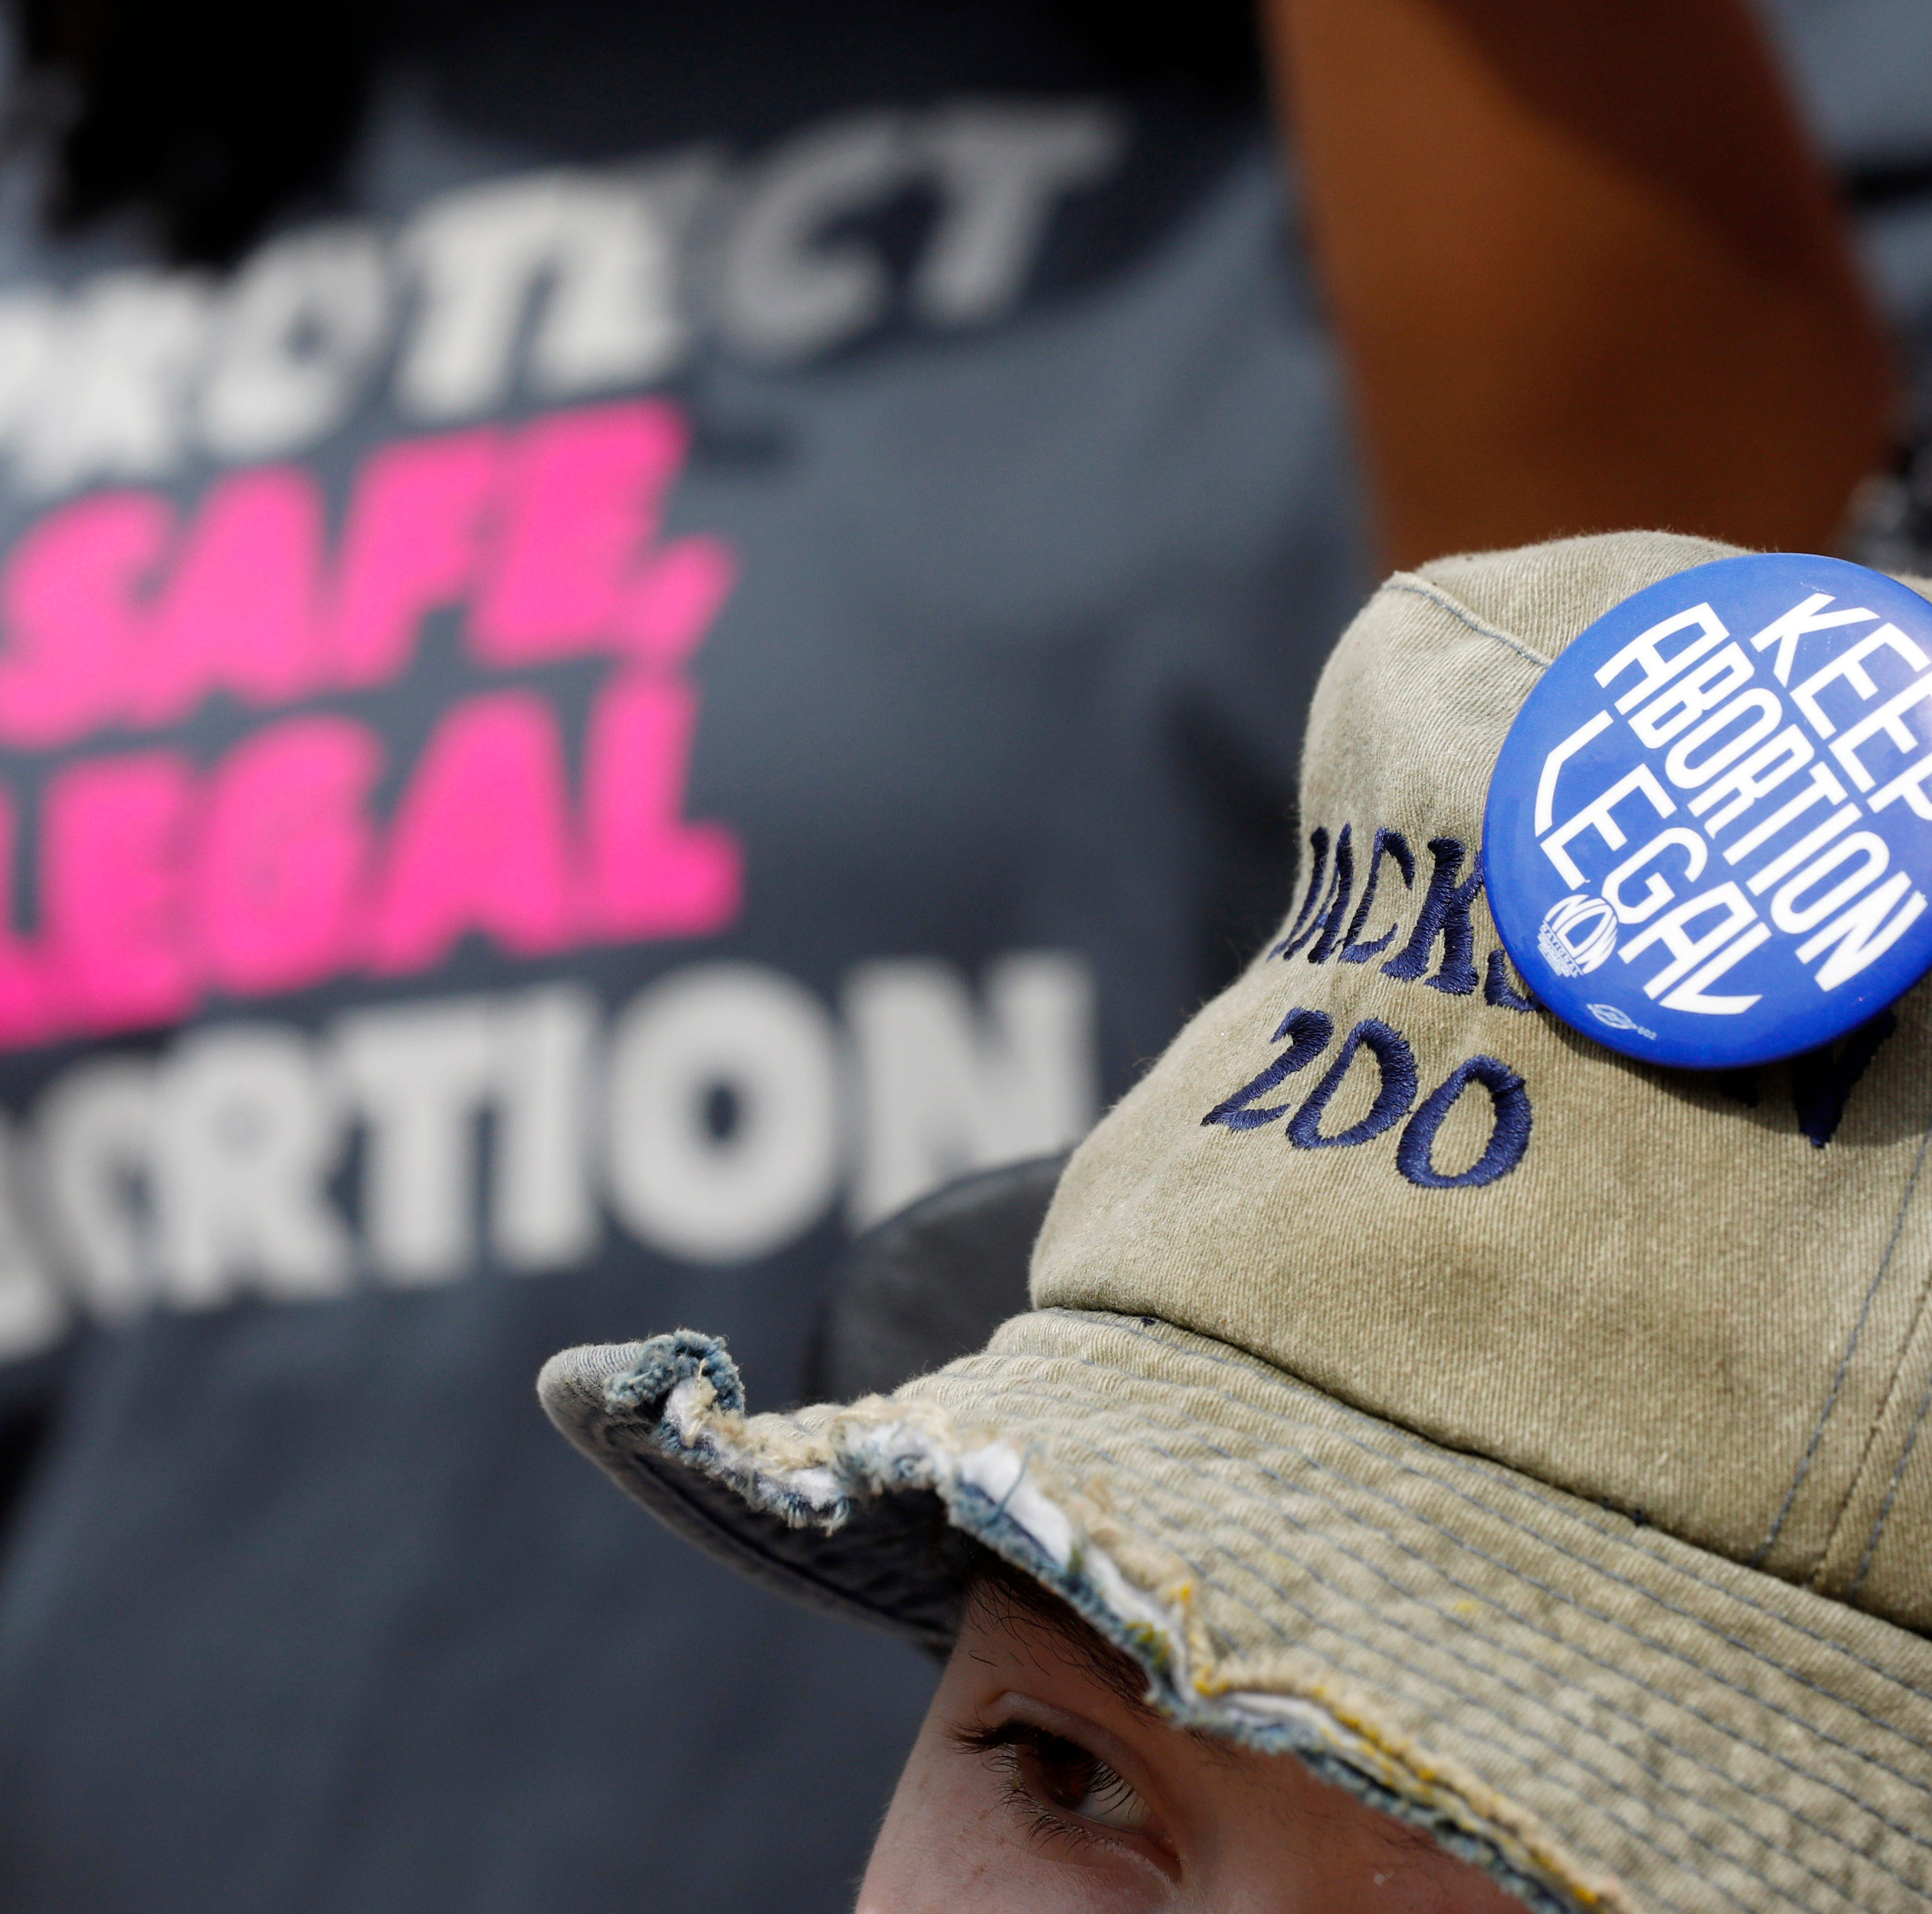 In this March 14, 2019 file photograph, a Planned Parenthood supporter hosts an abortion rights button on her hat during a rally on the steps of the Capitol in Jackson, Mississippi.